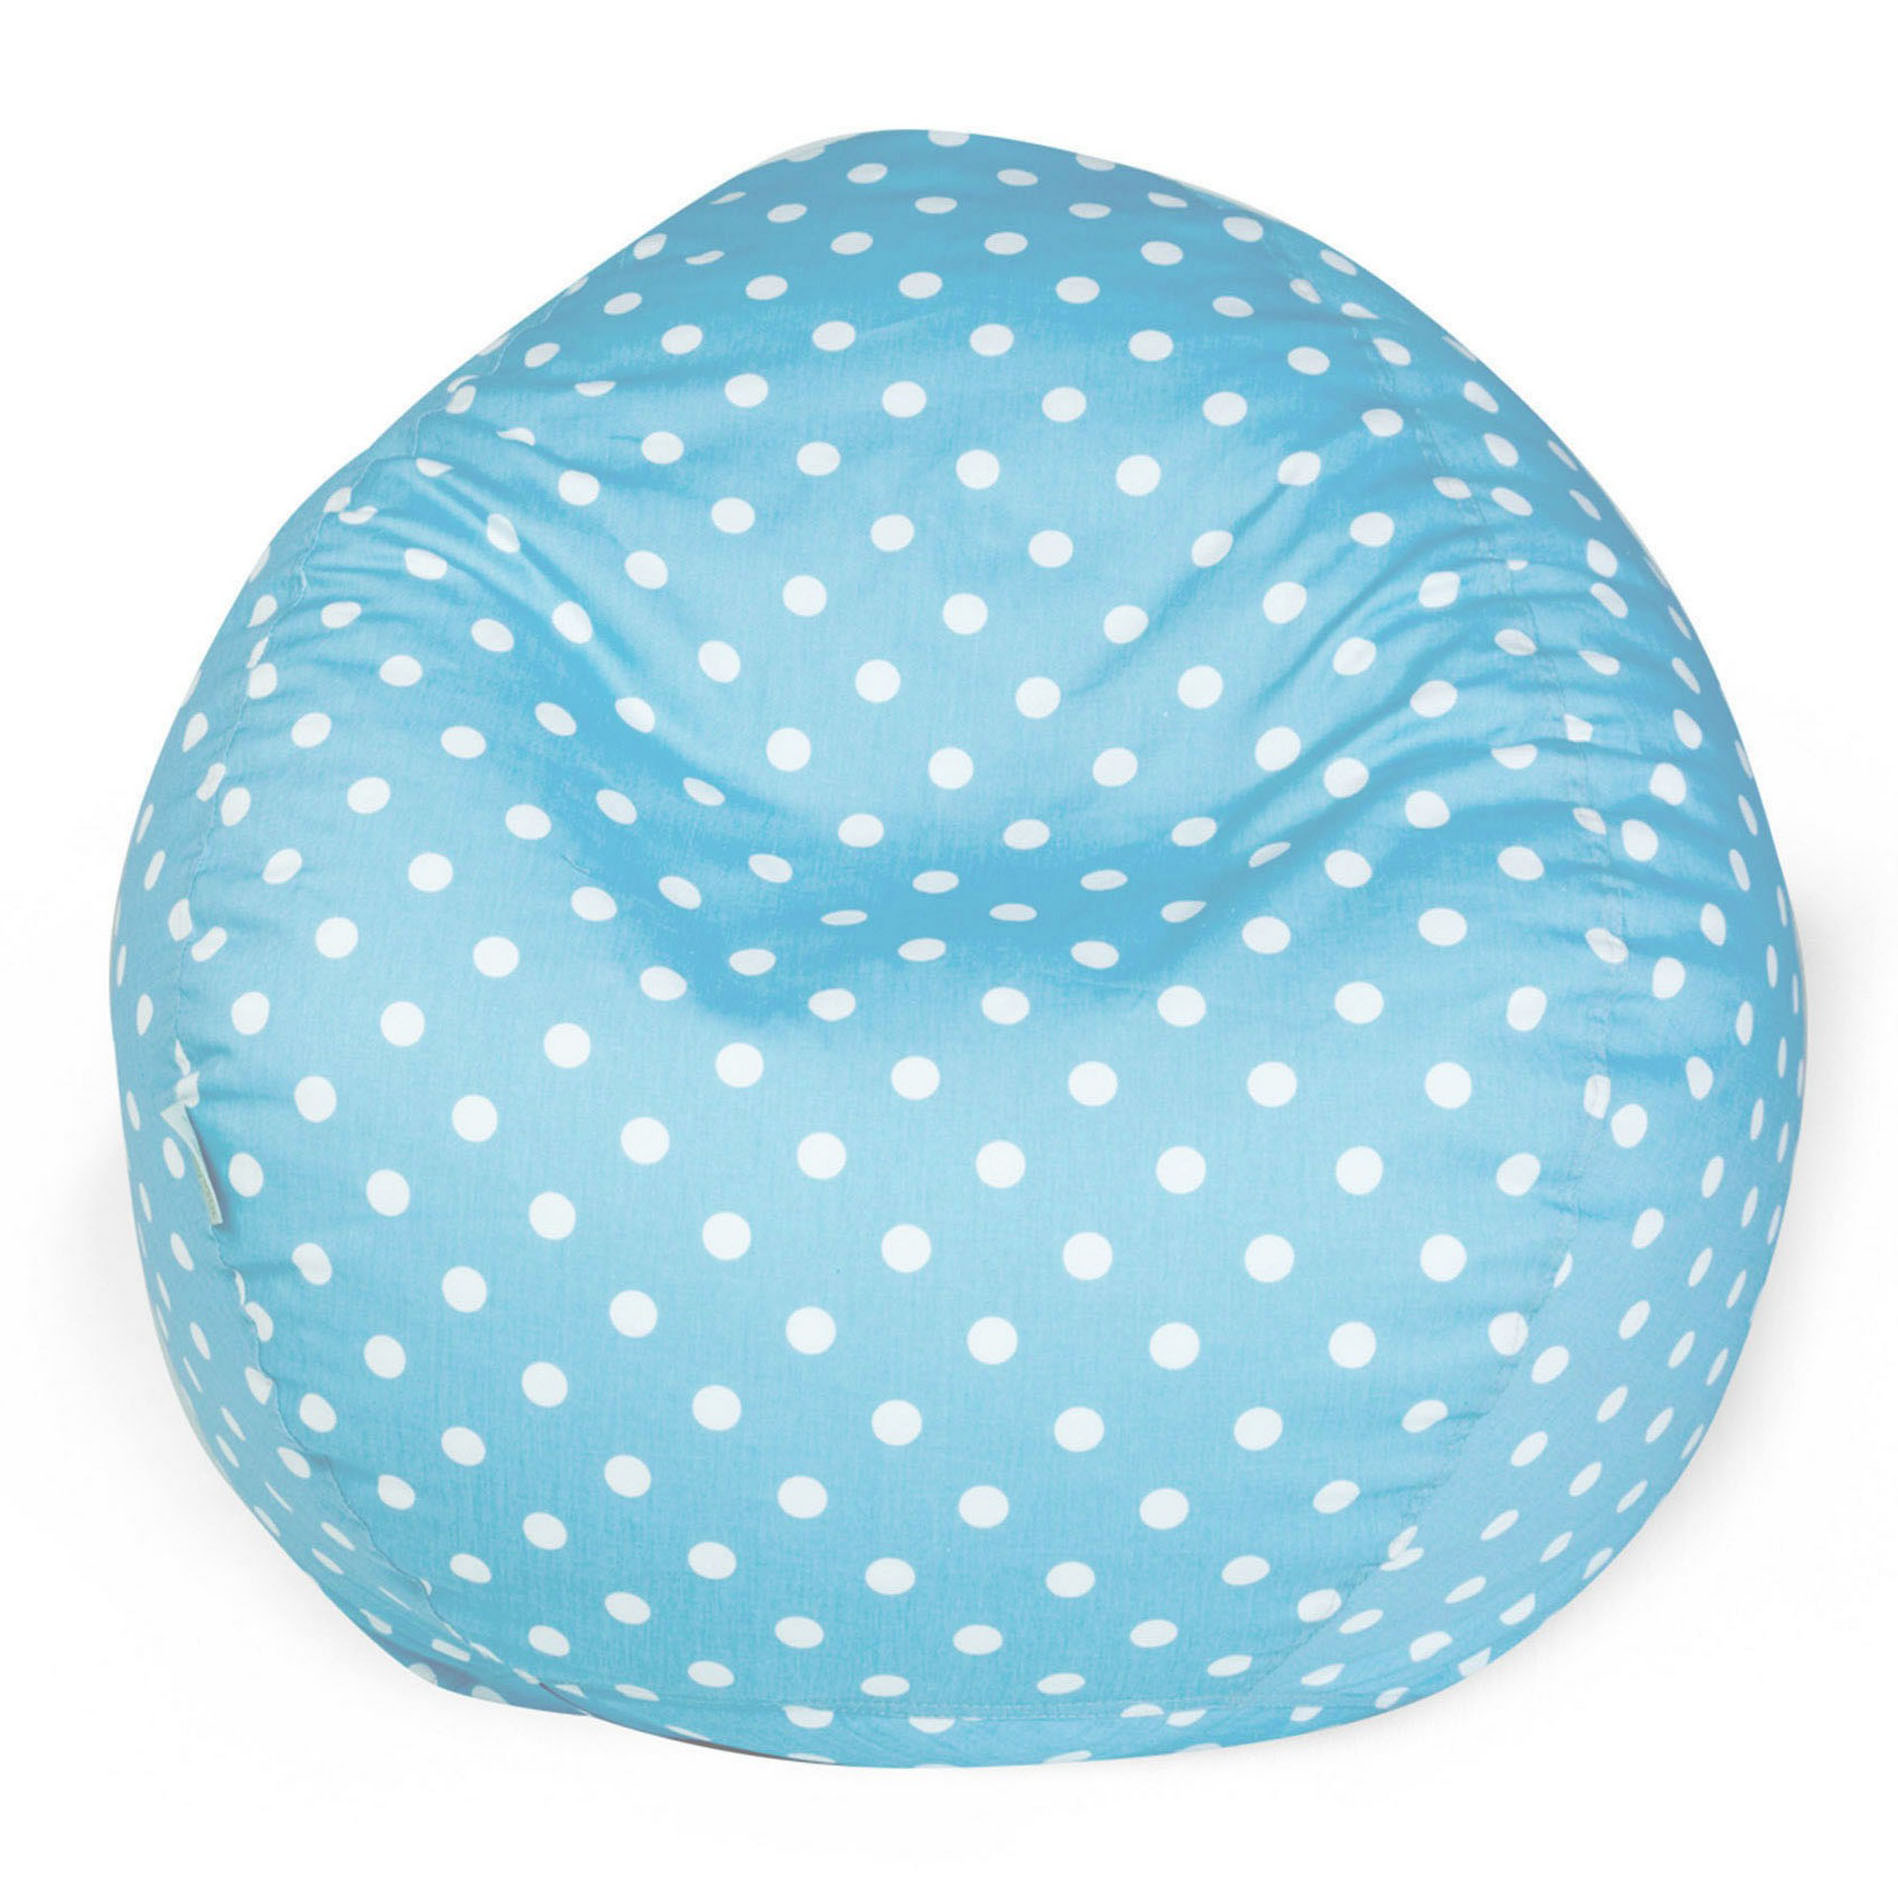 Majestic Home Goods Indoor Aquamarine Small Polka Dot Classic Bean Bag Chair 28 in L x 28 in W x 22 in H